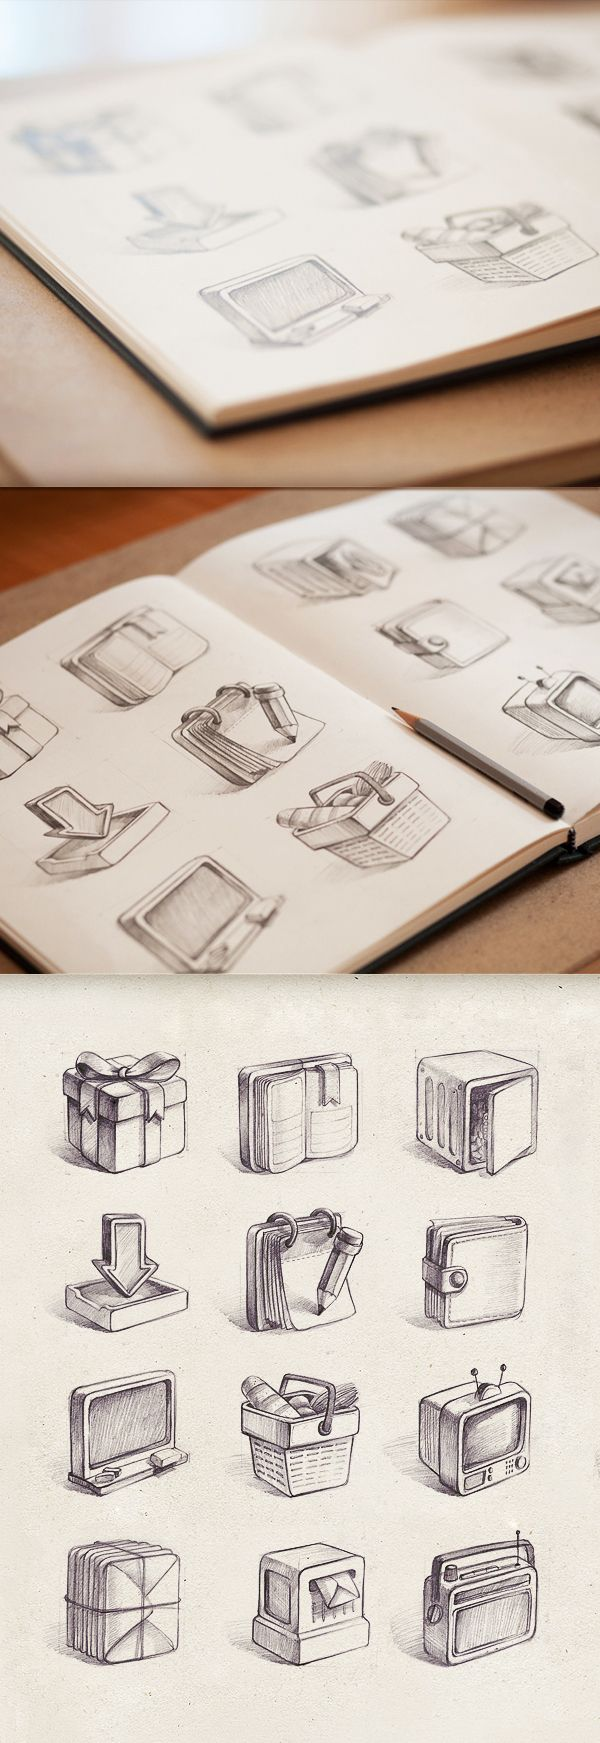 Icons and Illustrations Megapack by Mike, via Behance